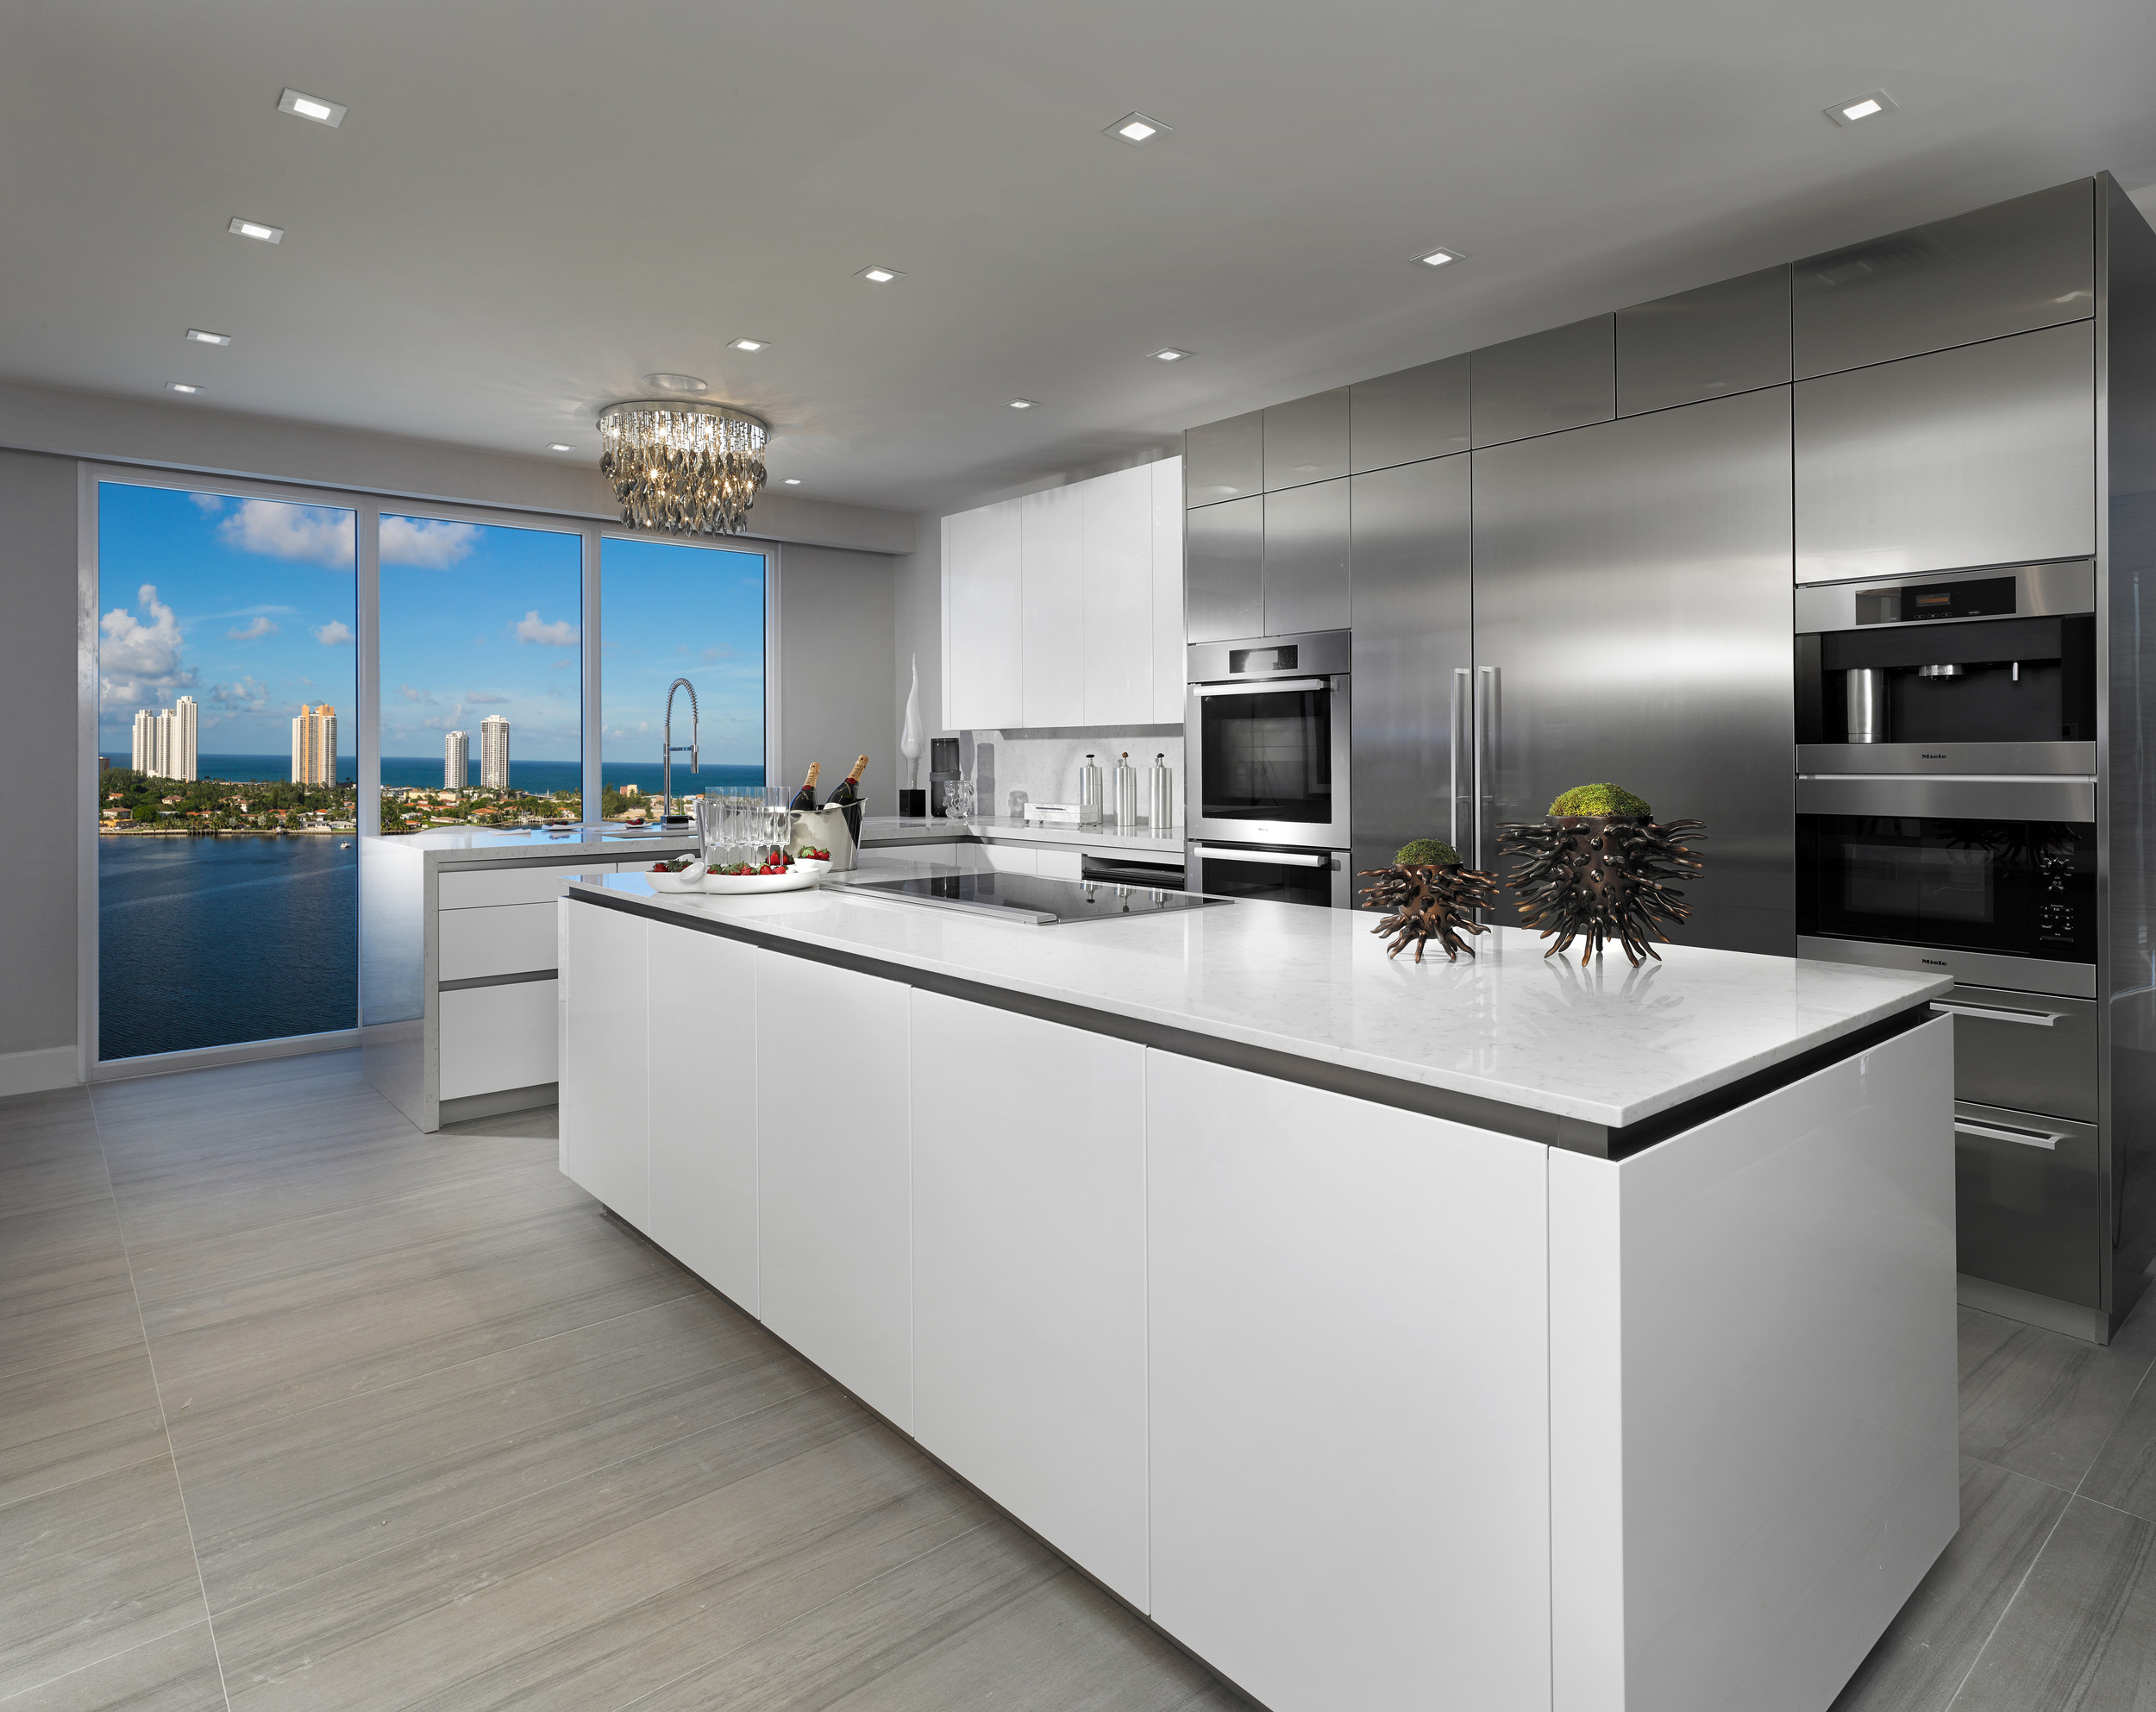 4-RESIDENCES-PRIVE_KITCHEN_B.jpg